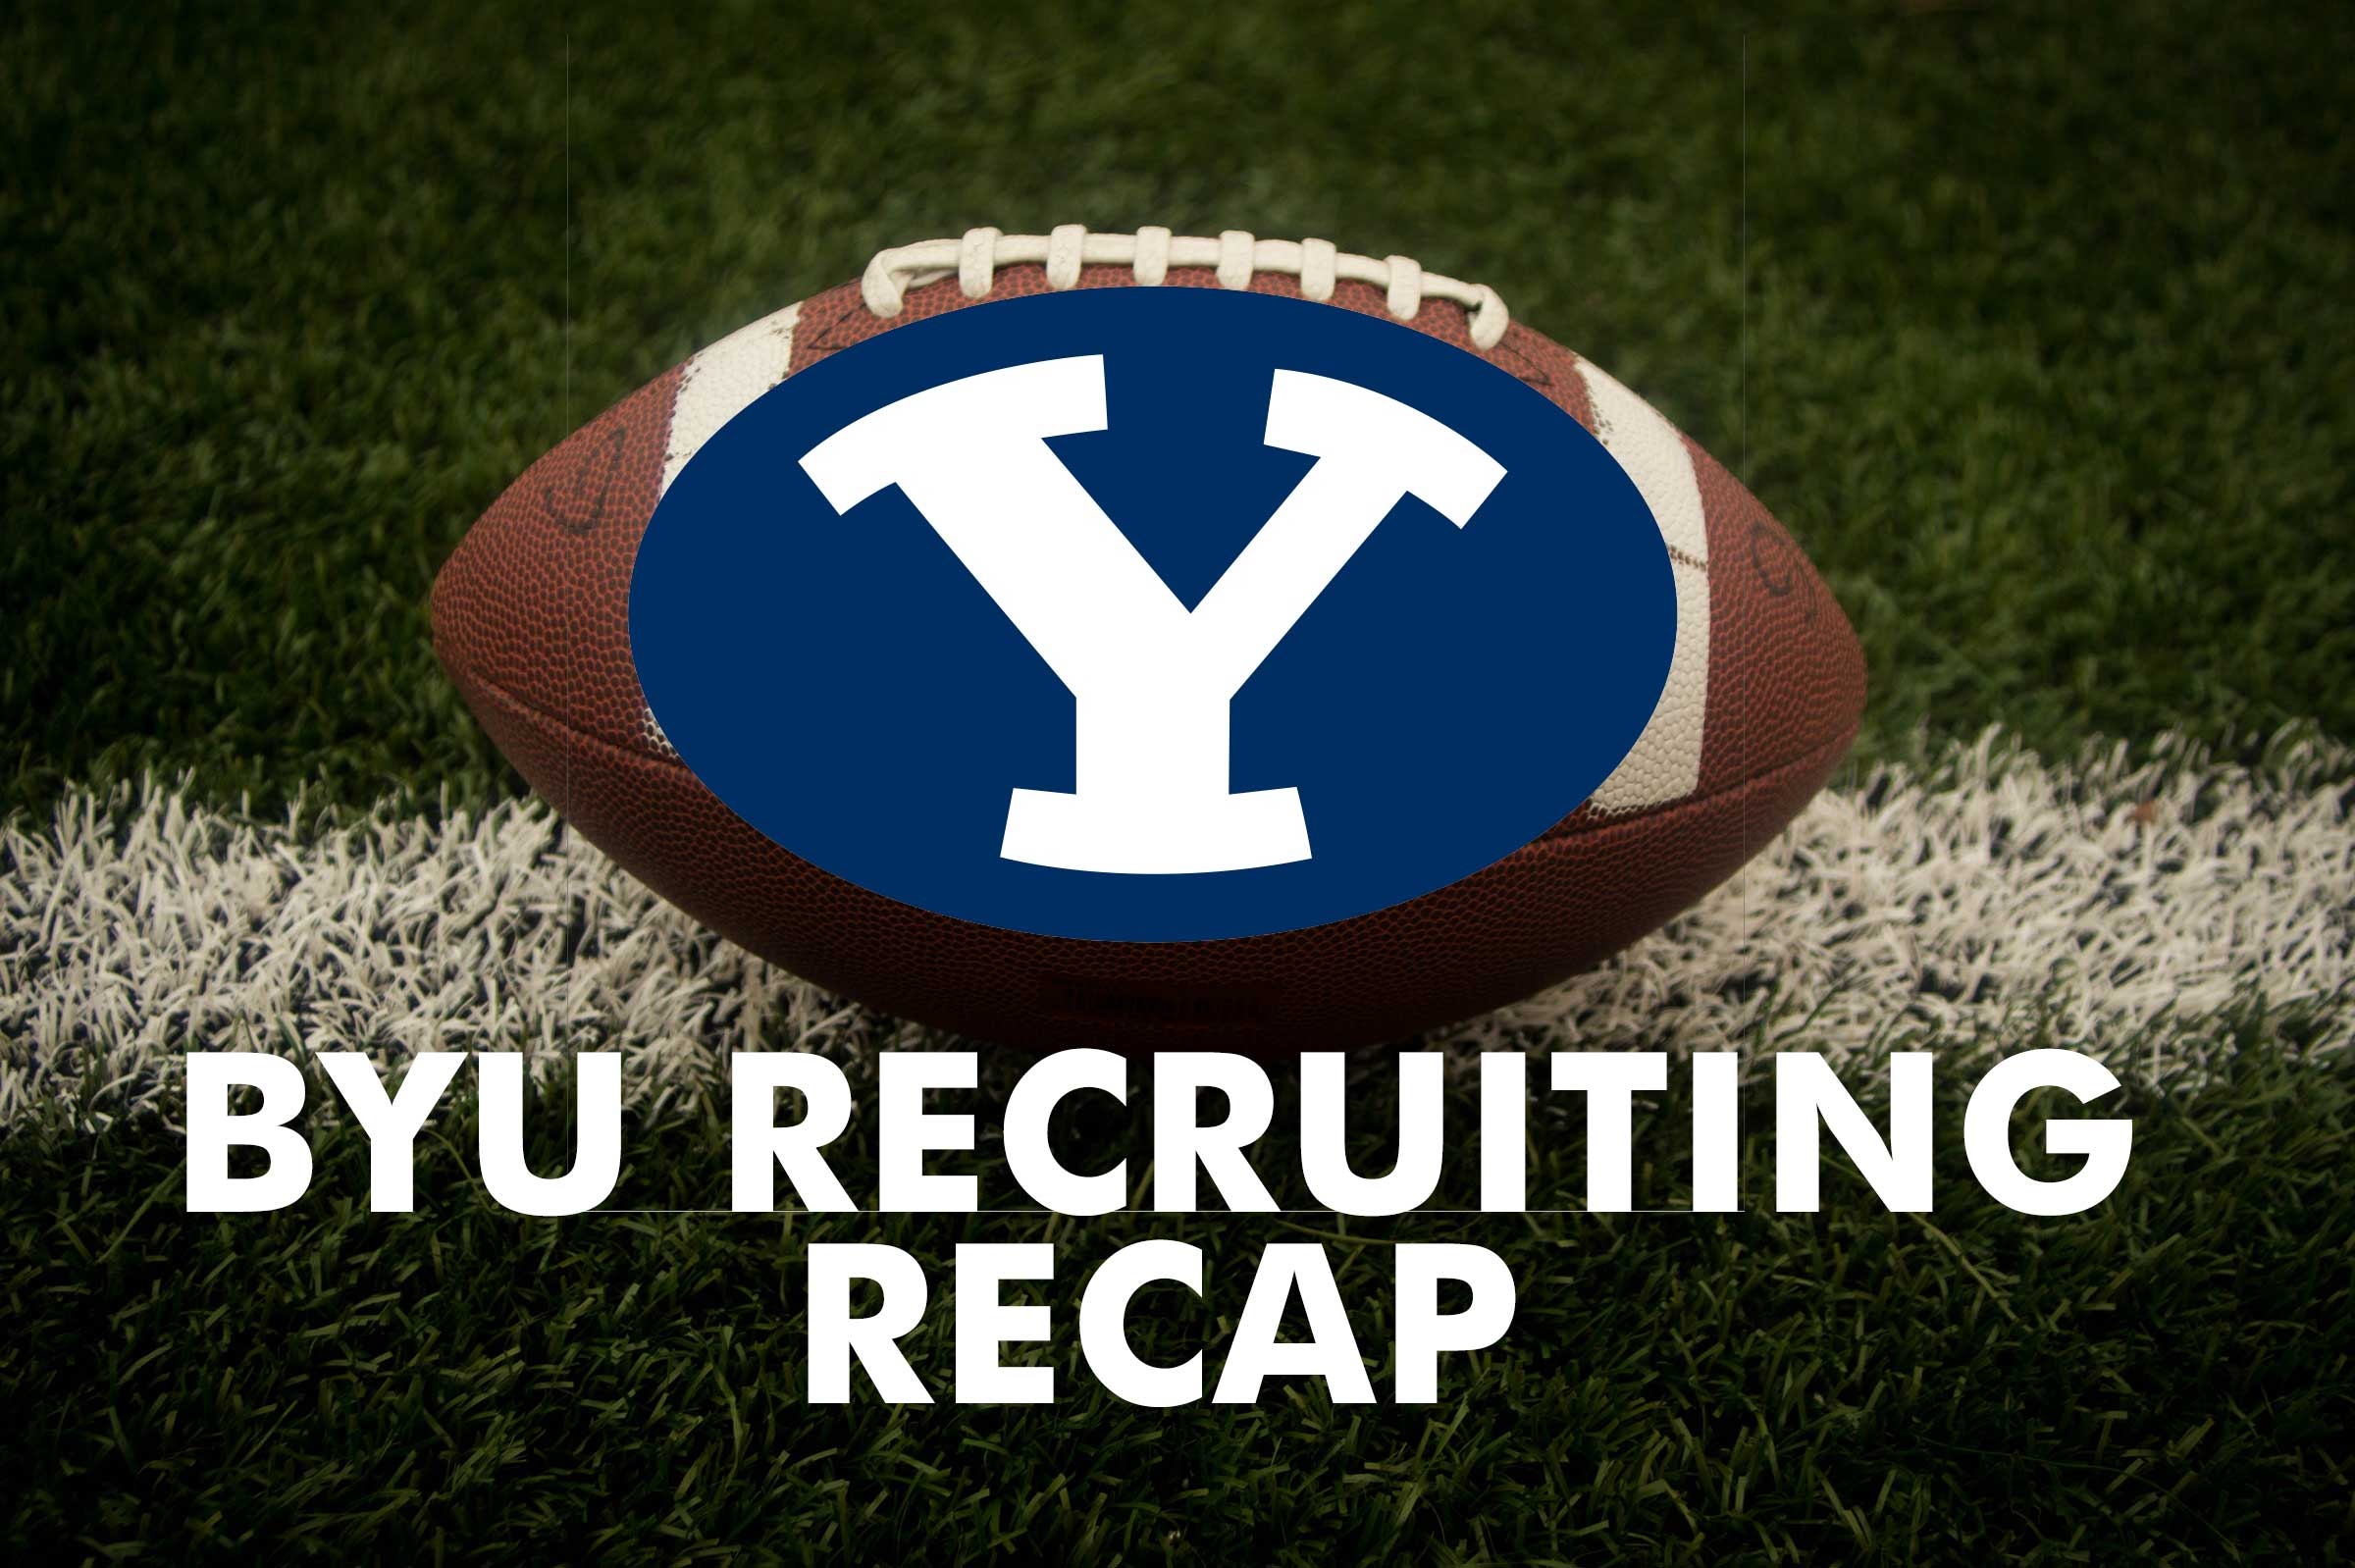 Recruiting Recap: Six more scholarship offers extended this week from BYU Football